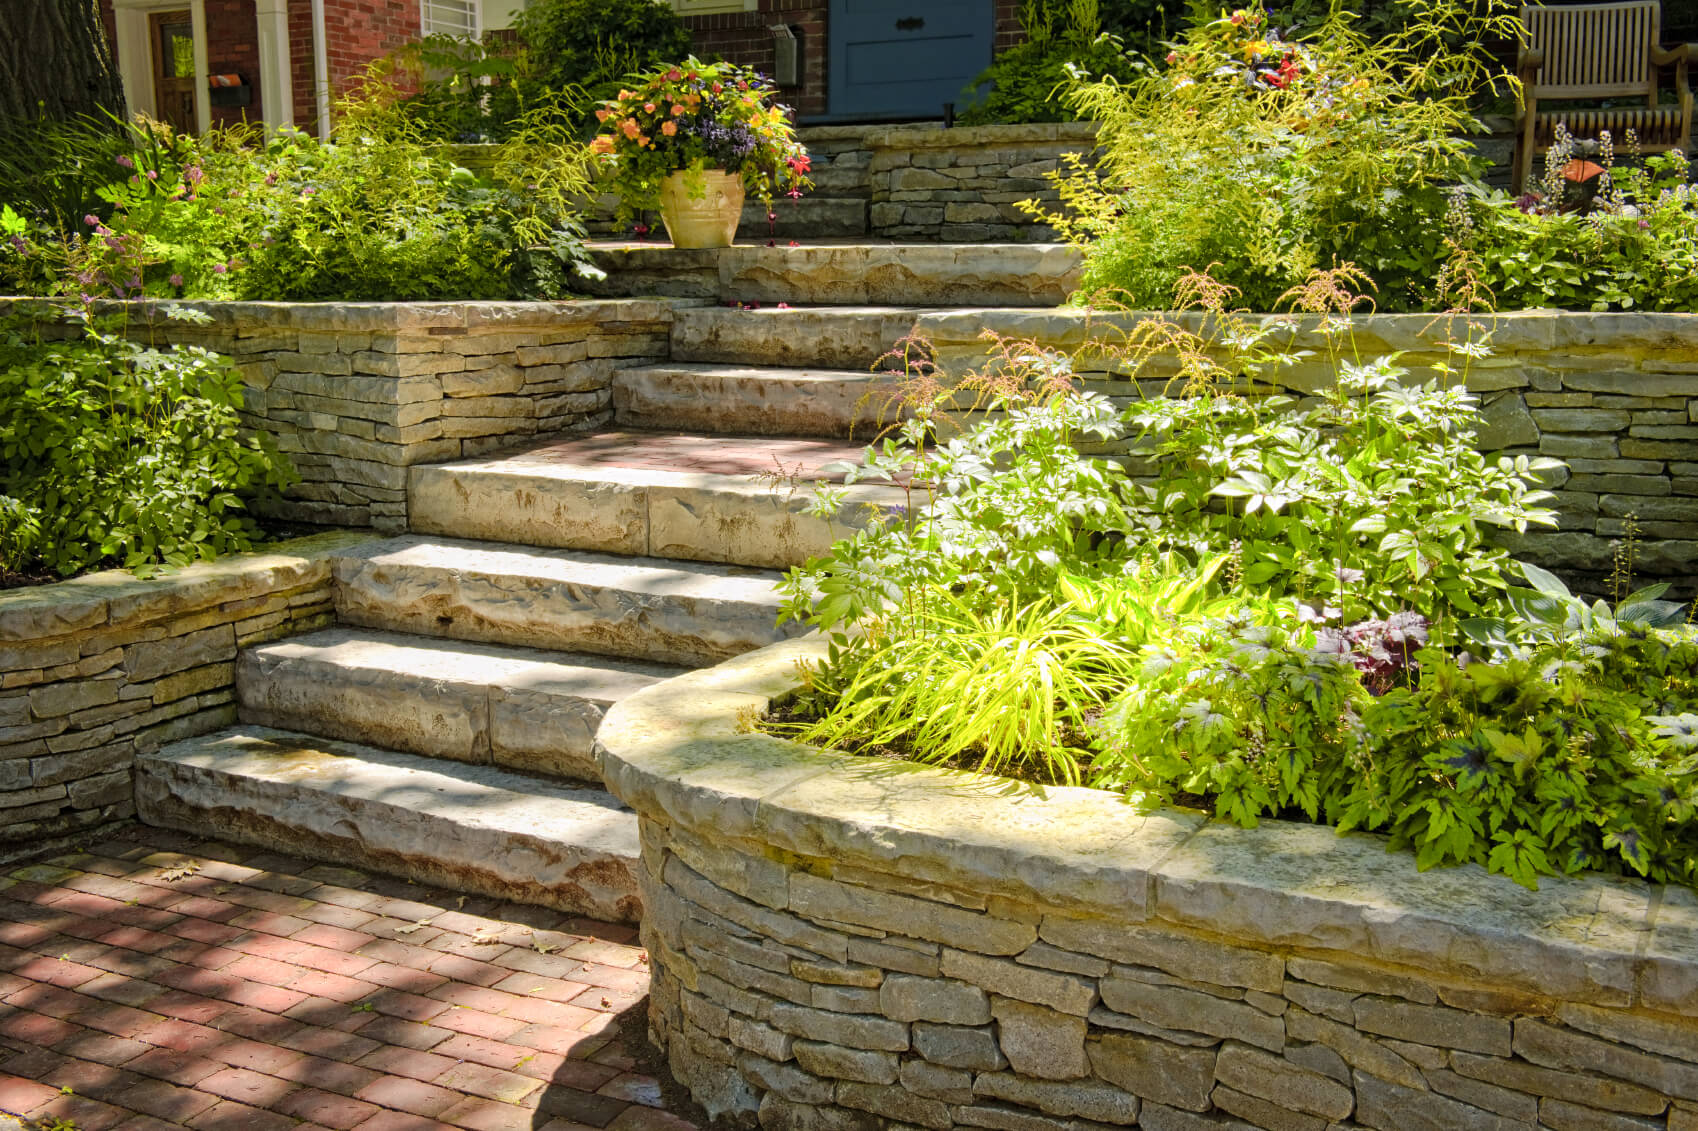 If you have a stairway to your front door, a flowerbed may be great on either side of the steps. Adorning your entrance with vibrant colors makes your home a very welcoming place.